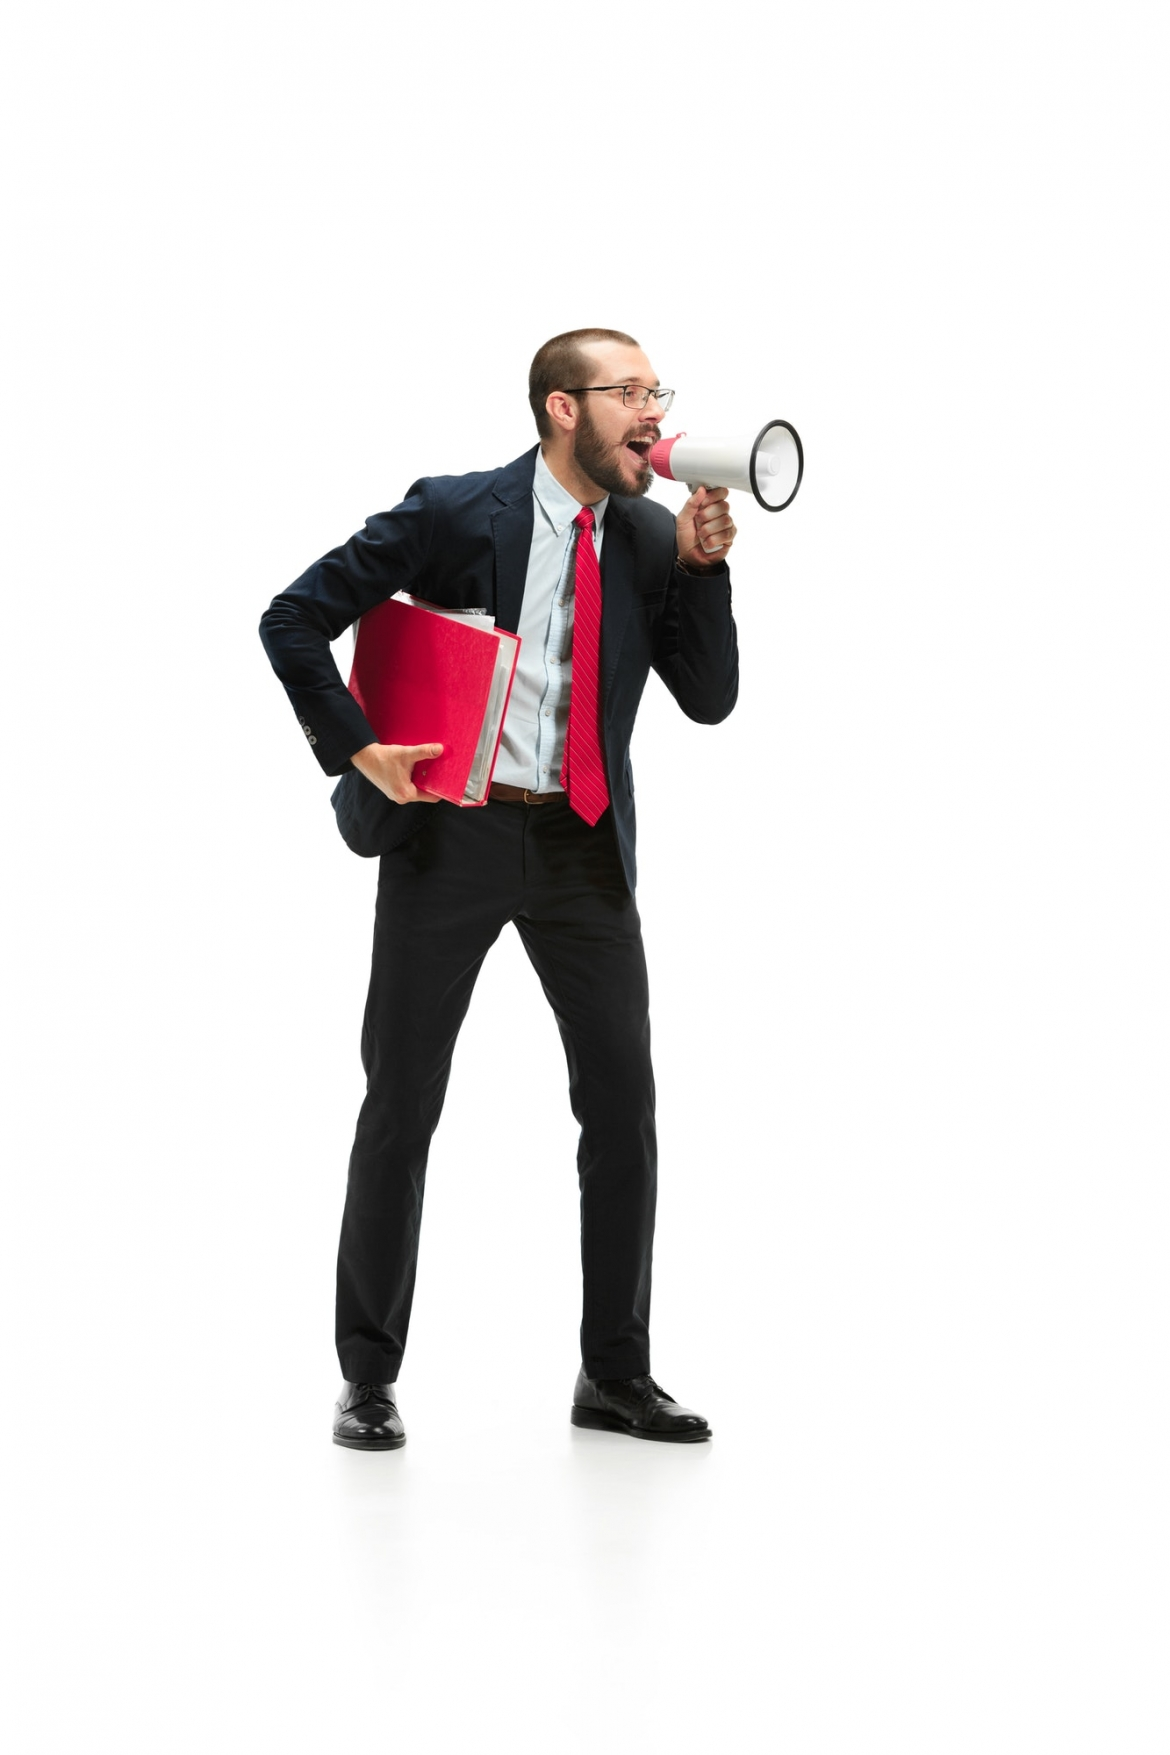 side-view-of-a-man-screaming-on-the-megaphone-over-white-background.jpg